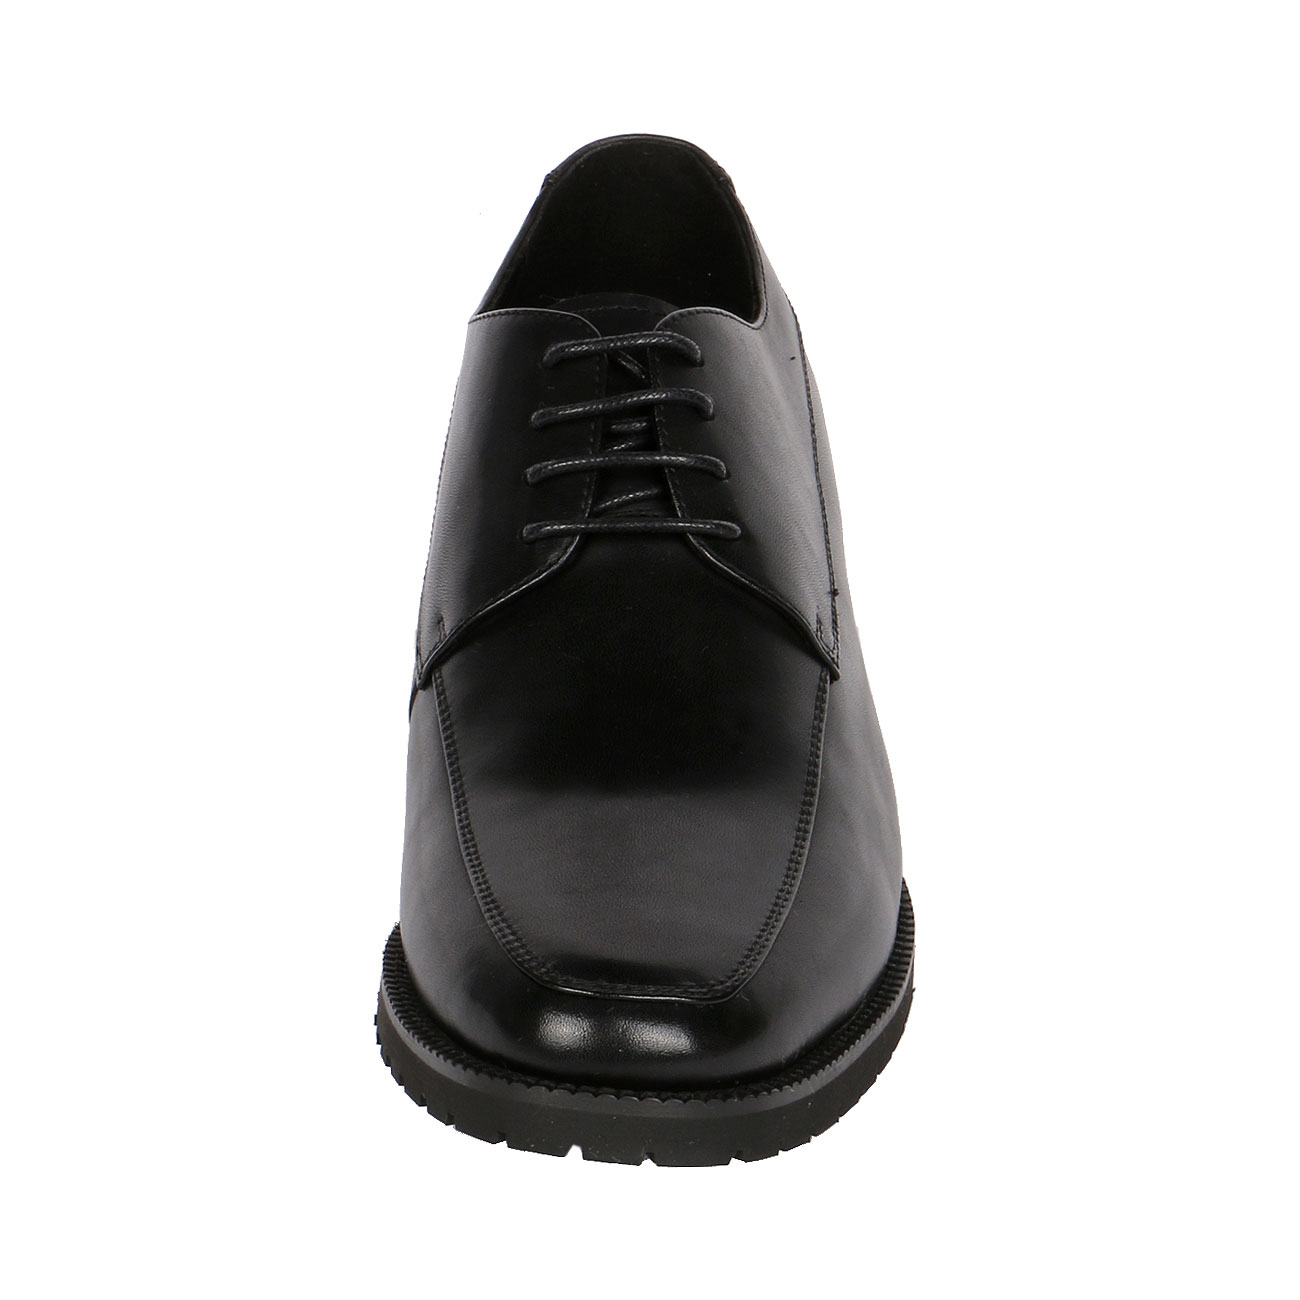 Apron Toe Derby Men Inserted Hidden Shoe Lift 3